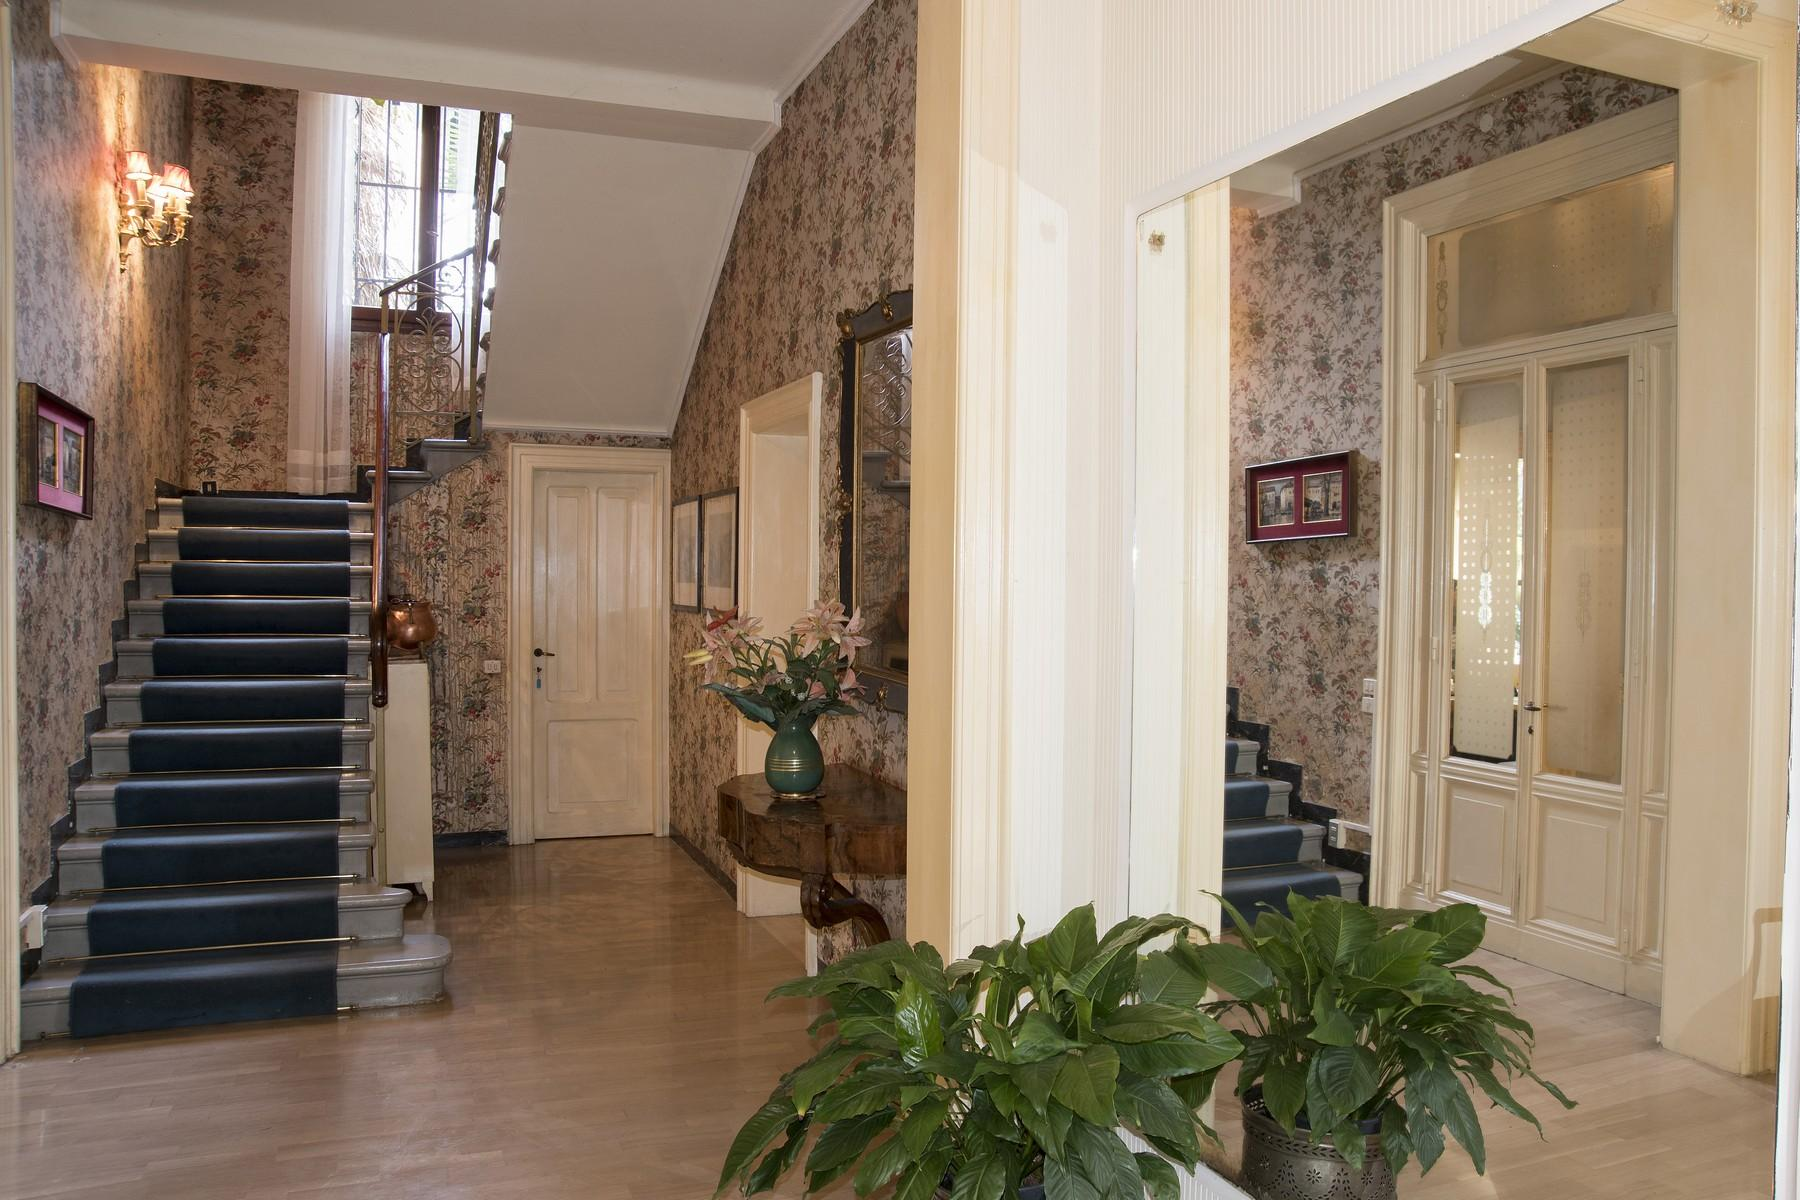 Wonderful Art Nouveau villa in the heart of Treviso - 6